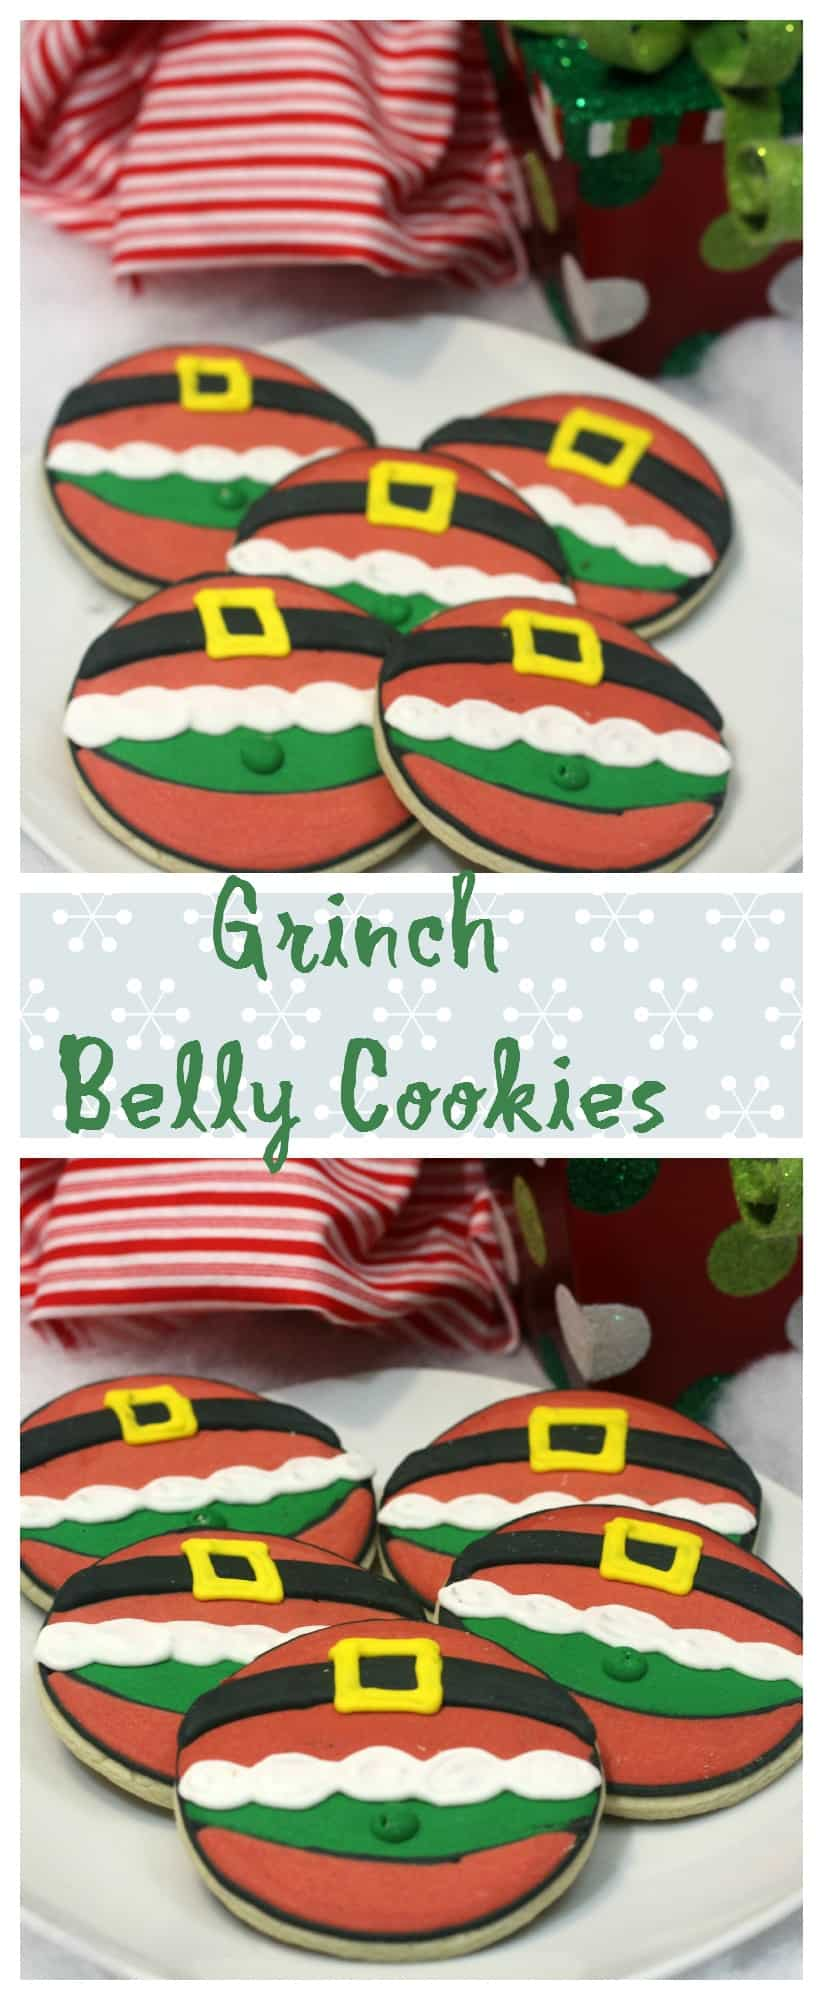 Grinch belly christmas cookies